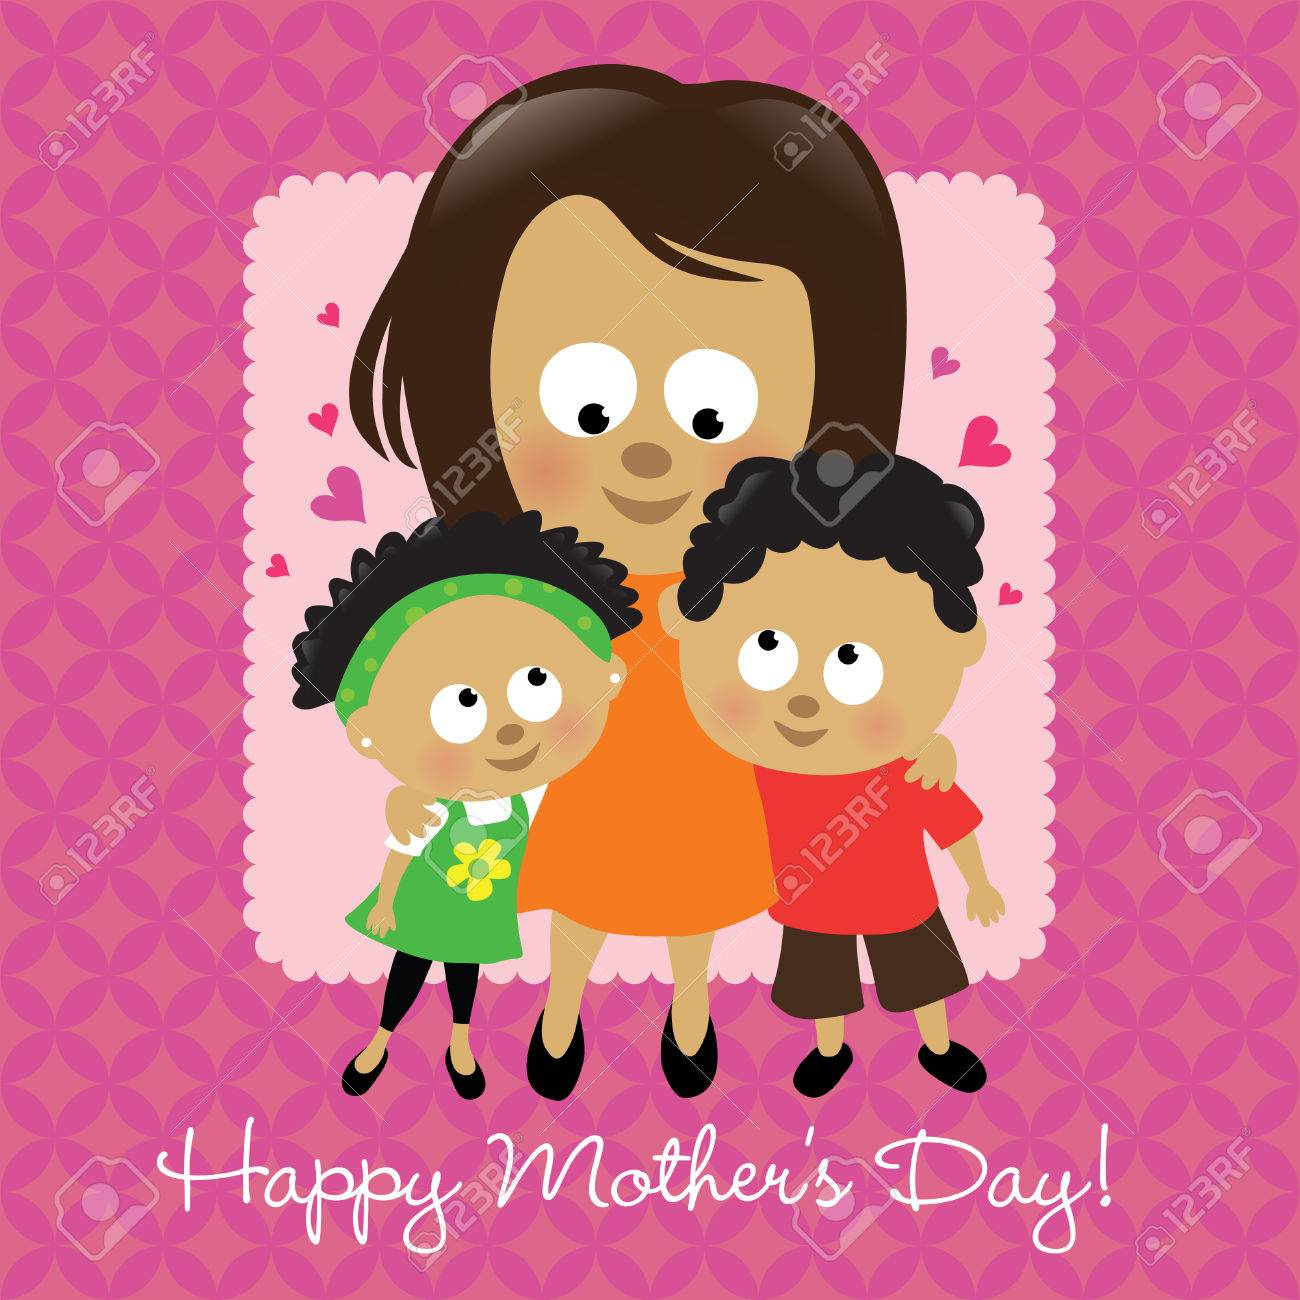 Happy Mother's Day African American Stock Vector - 6770109